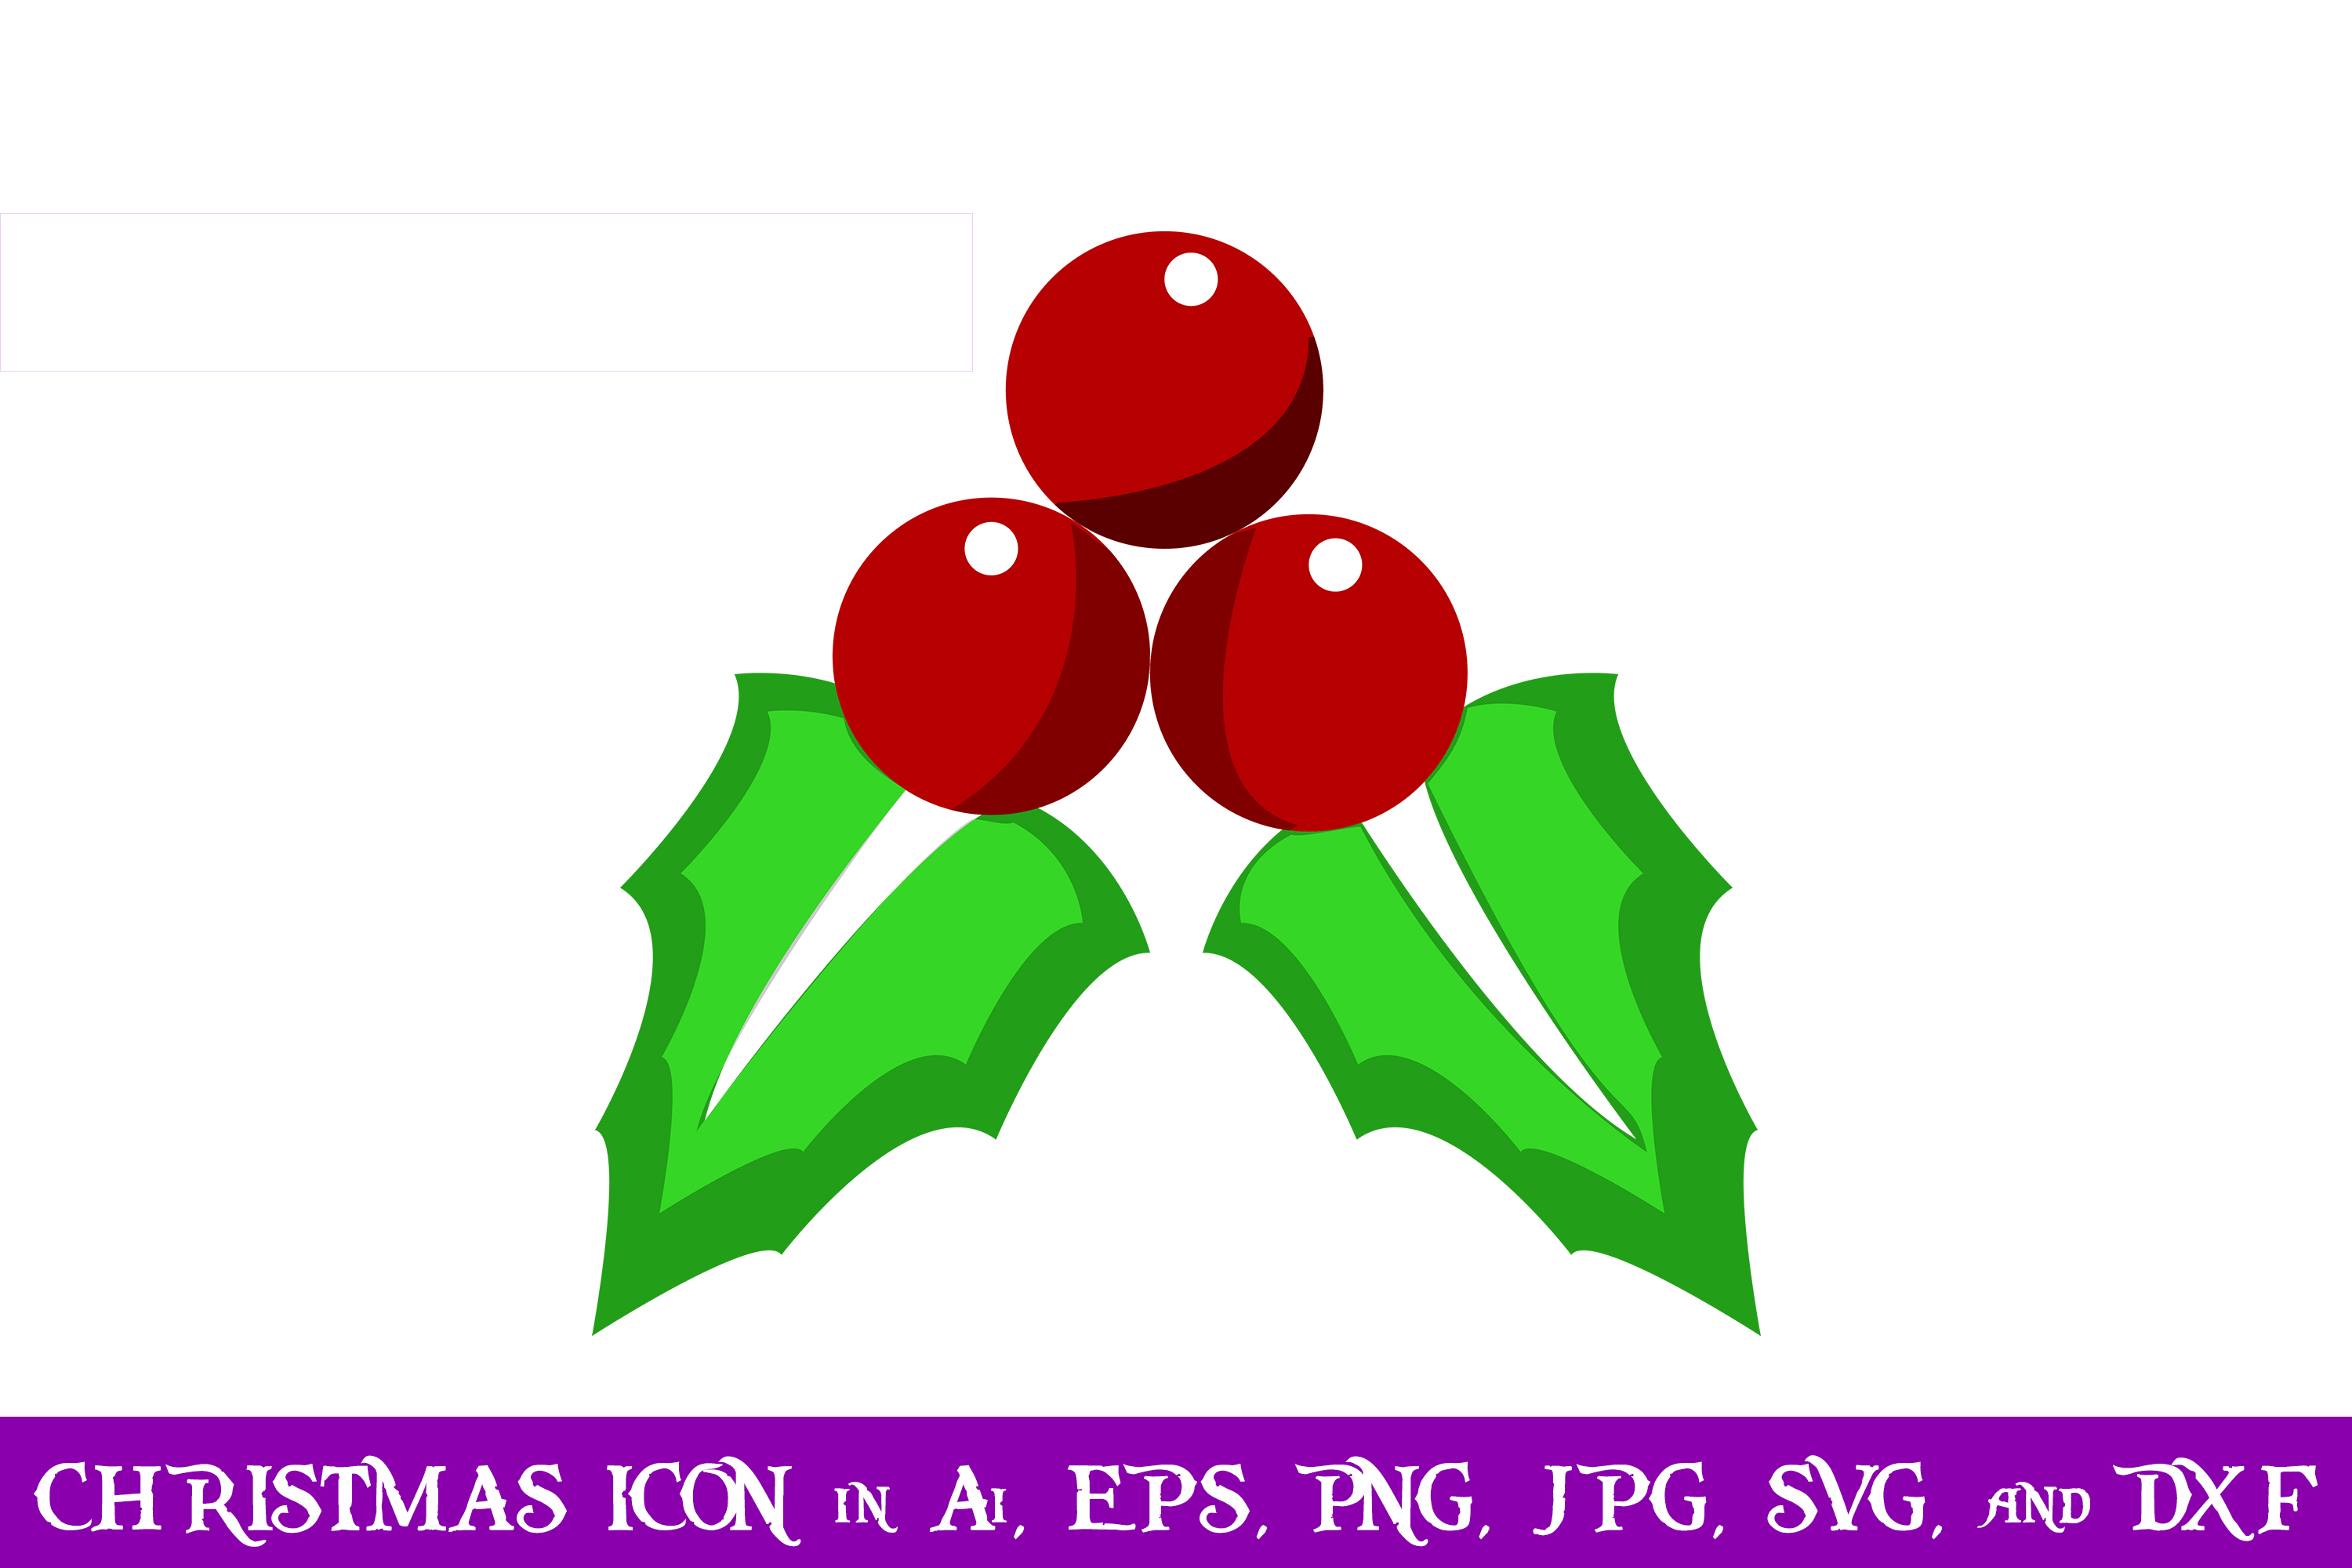 Download Free Mistletoe Christmas Icon Graphic By Purplespoonpirates for Cricut Explore, Silhouette and other cutting machines.